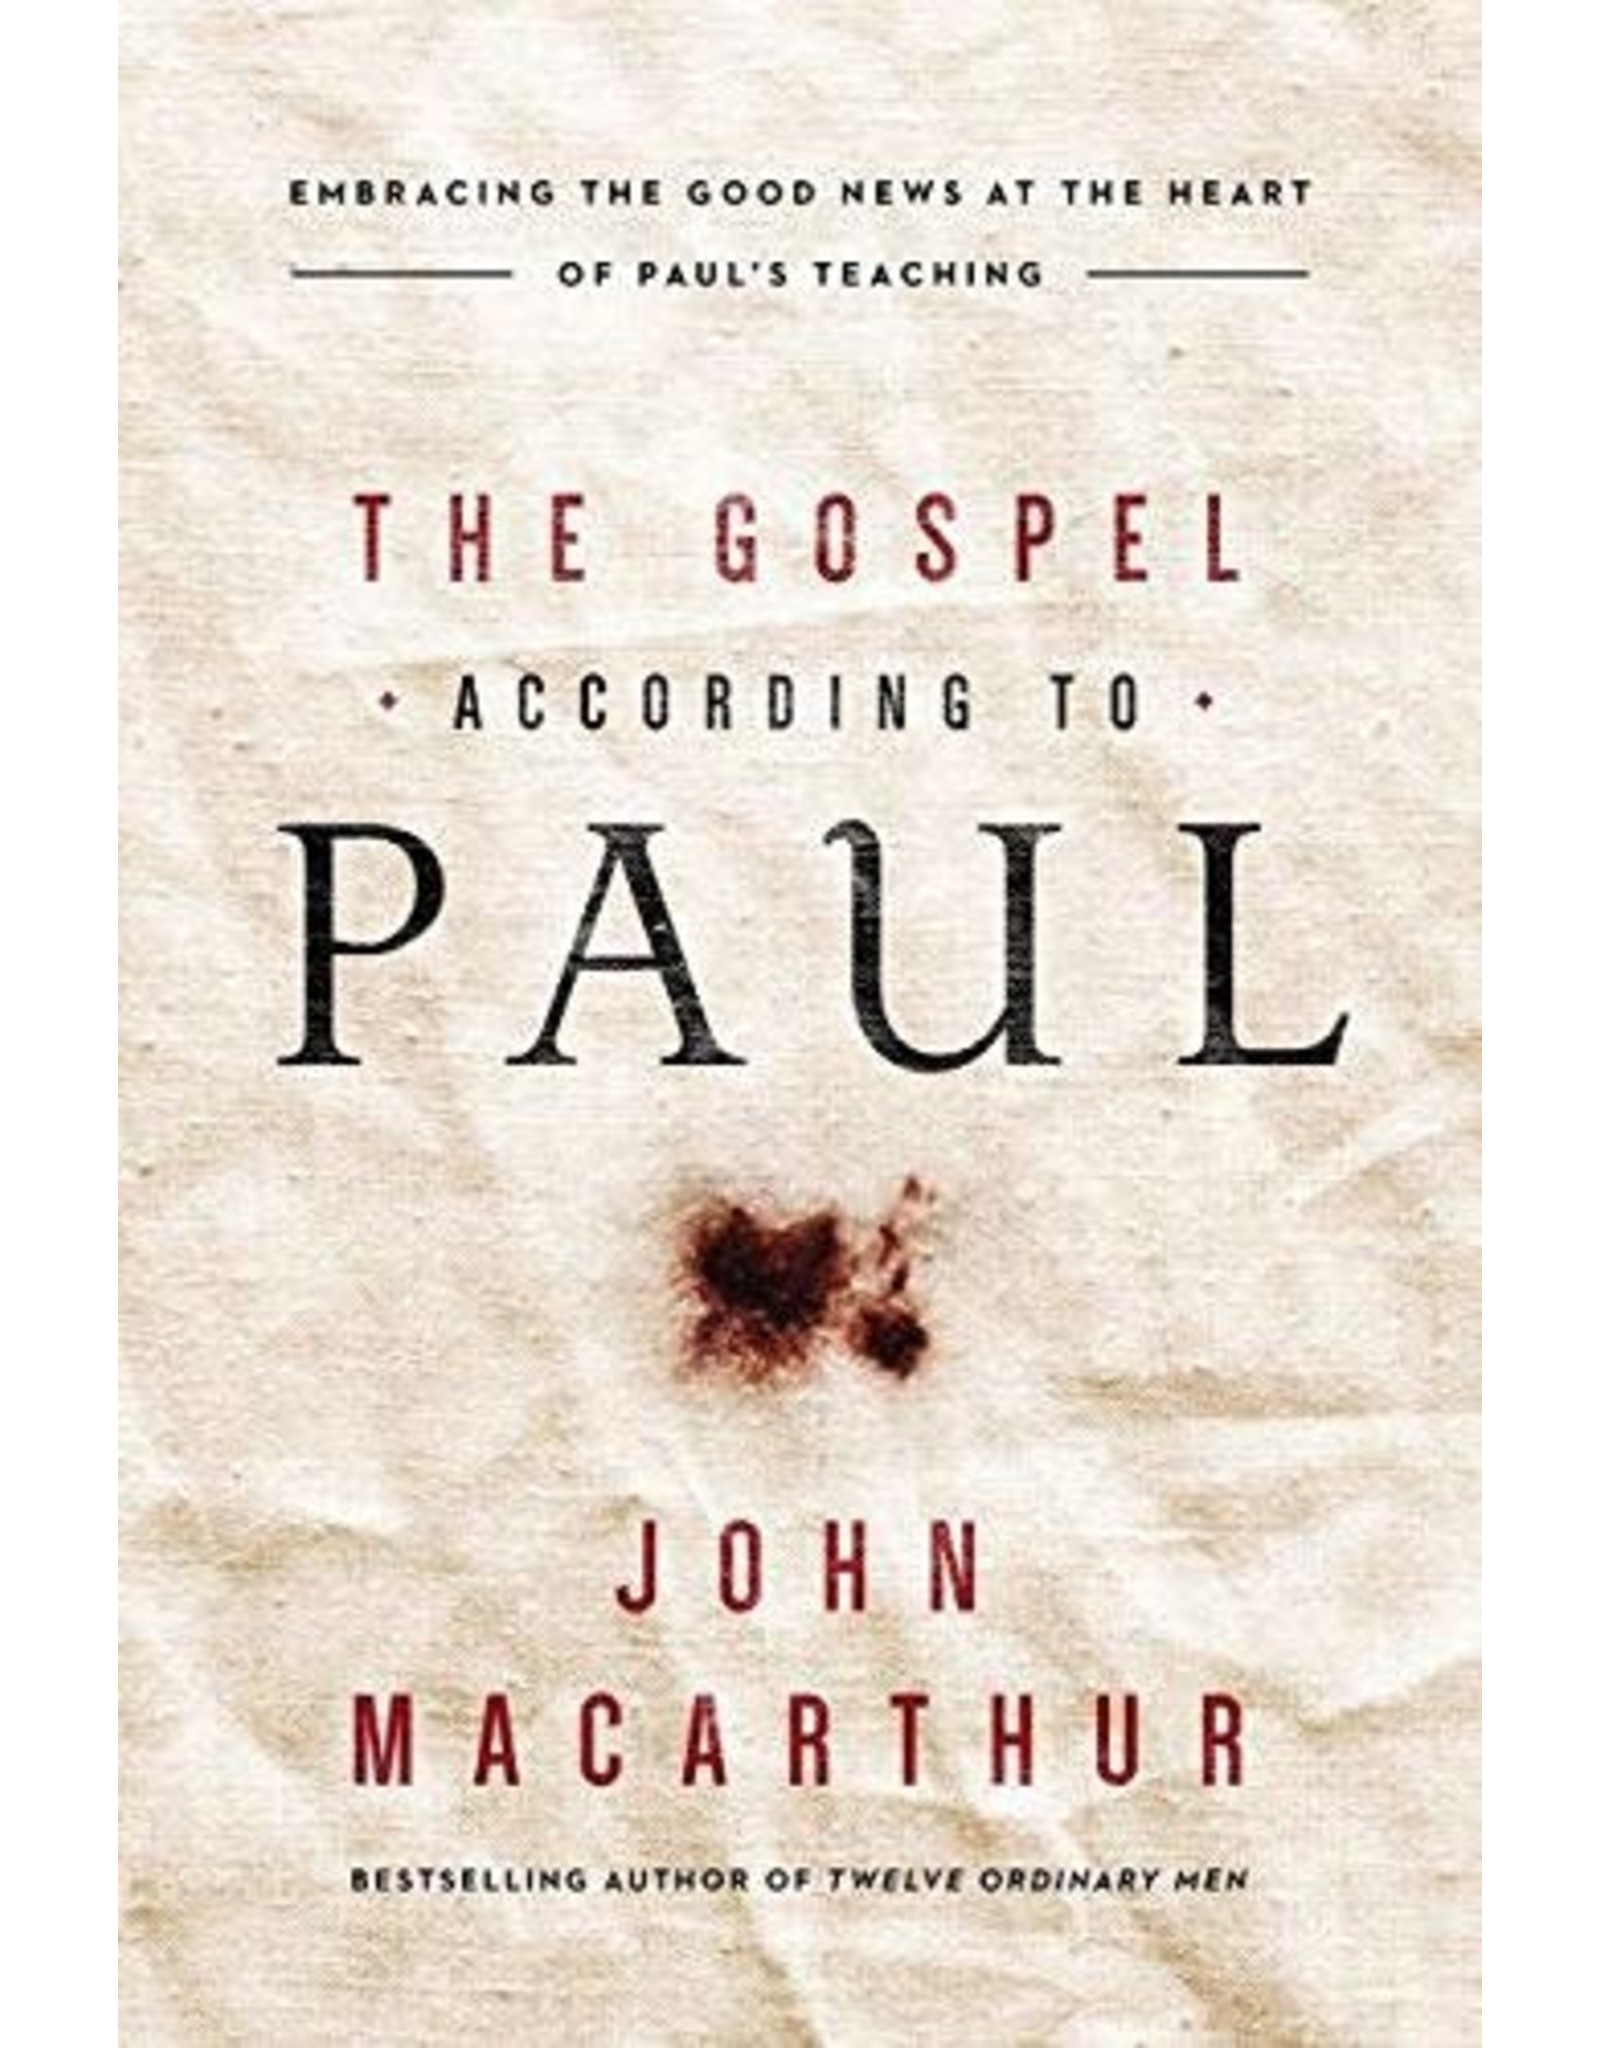 Harper Collins / Thomas Nelson / Zondervan The Gospel According to Paul: Embracing the Good News at the Heart of Paul's Teaching (Paperback)